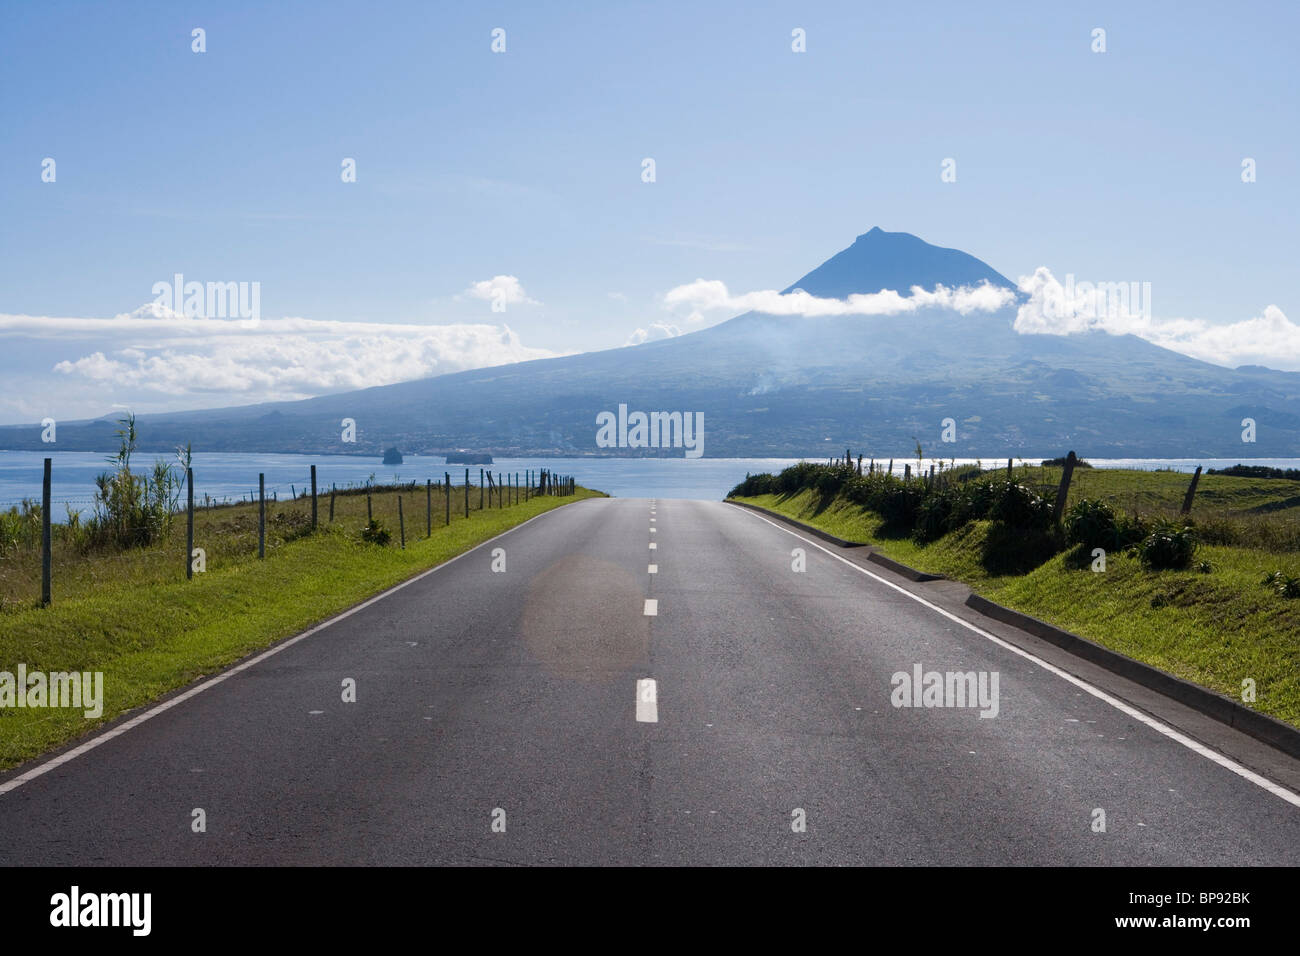 Road with view towards Pico Island, Horta, Faial Island, Azores, Portugal, Europe - Stock Image